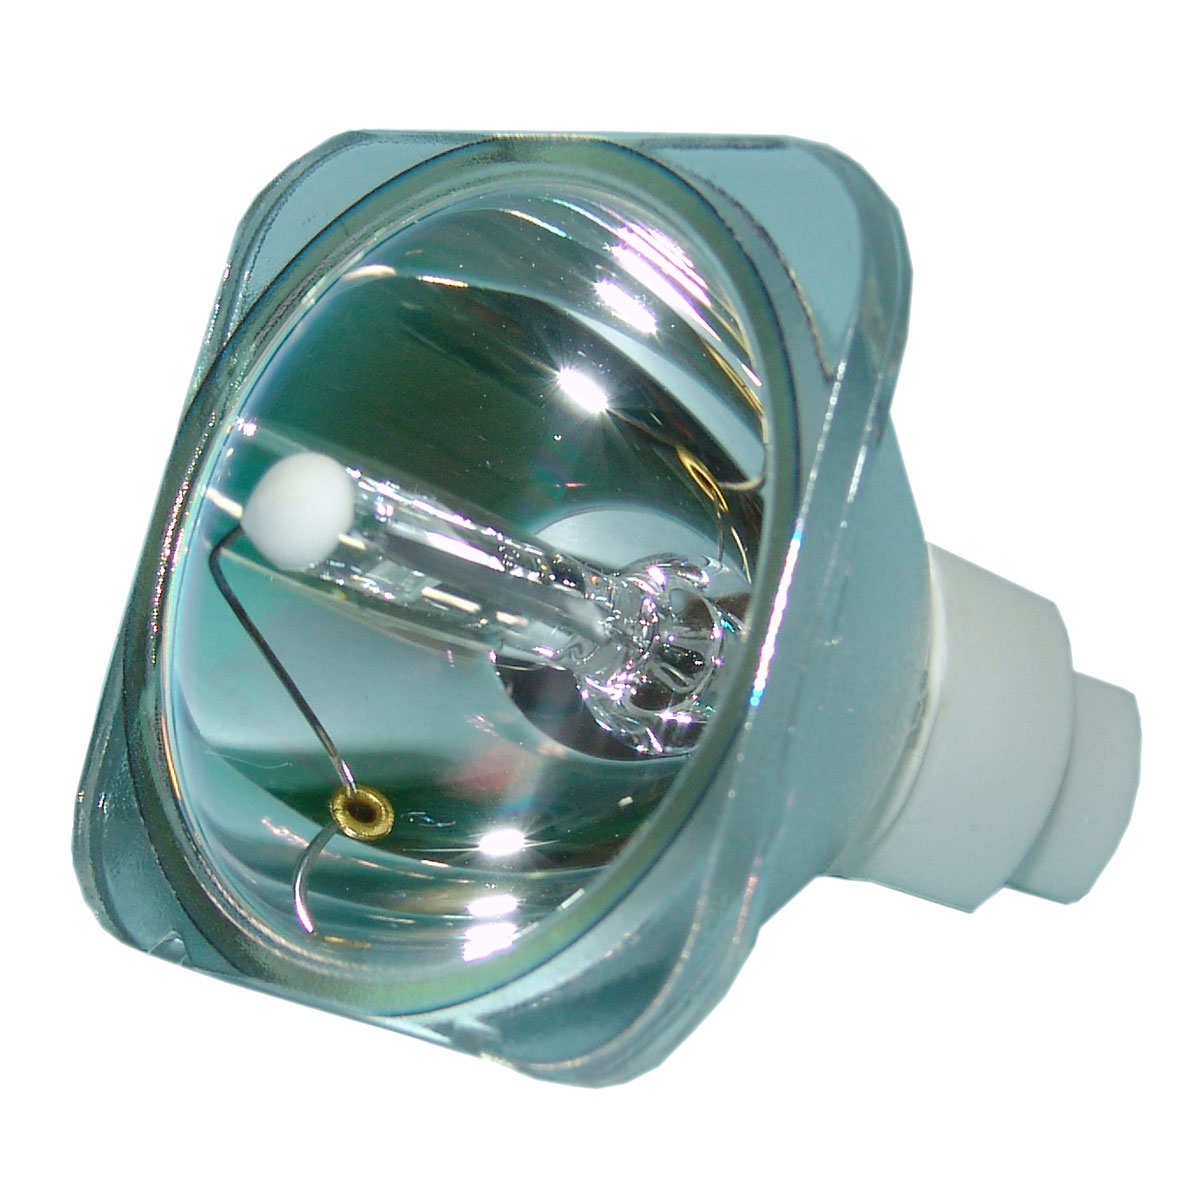 Replacement Lamp Assembly with Genuine Original OEM Bulb Inside for RUNCO Light Style LS-5 Projector Power by Osram